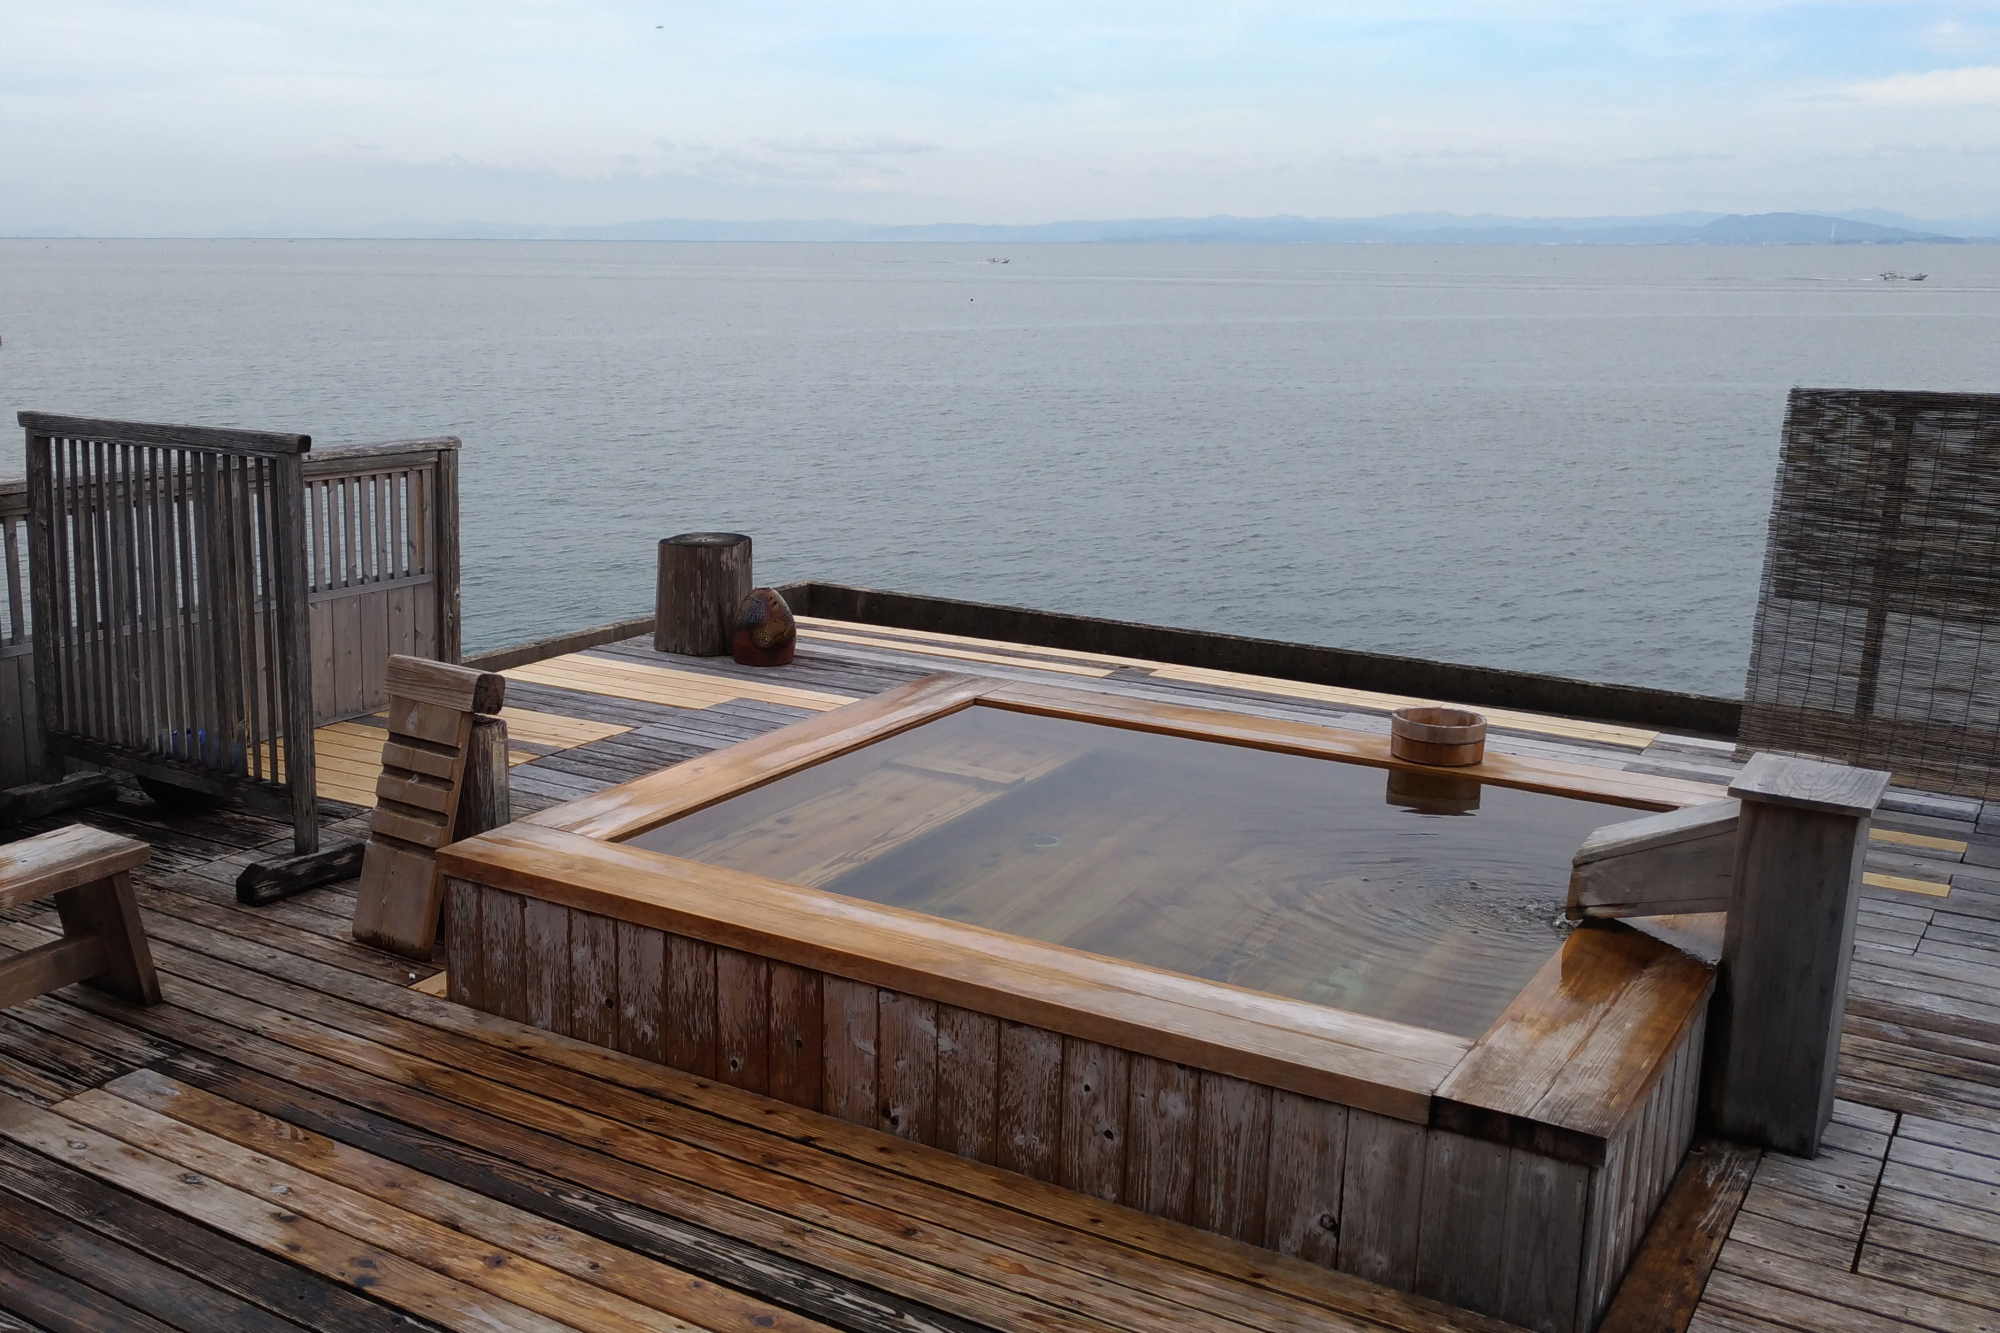 Sea and sky: Hoyosu Inn in Saga Prefecture has a private outdoor bath with excellent views over the Ariake Sea. | CHRIS OTT